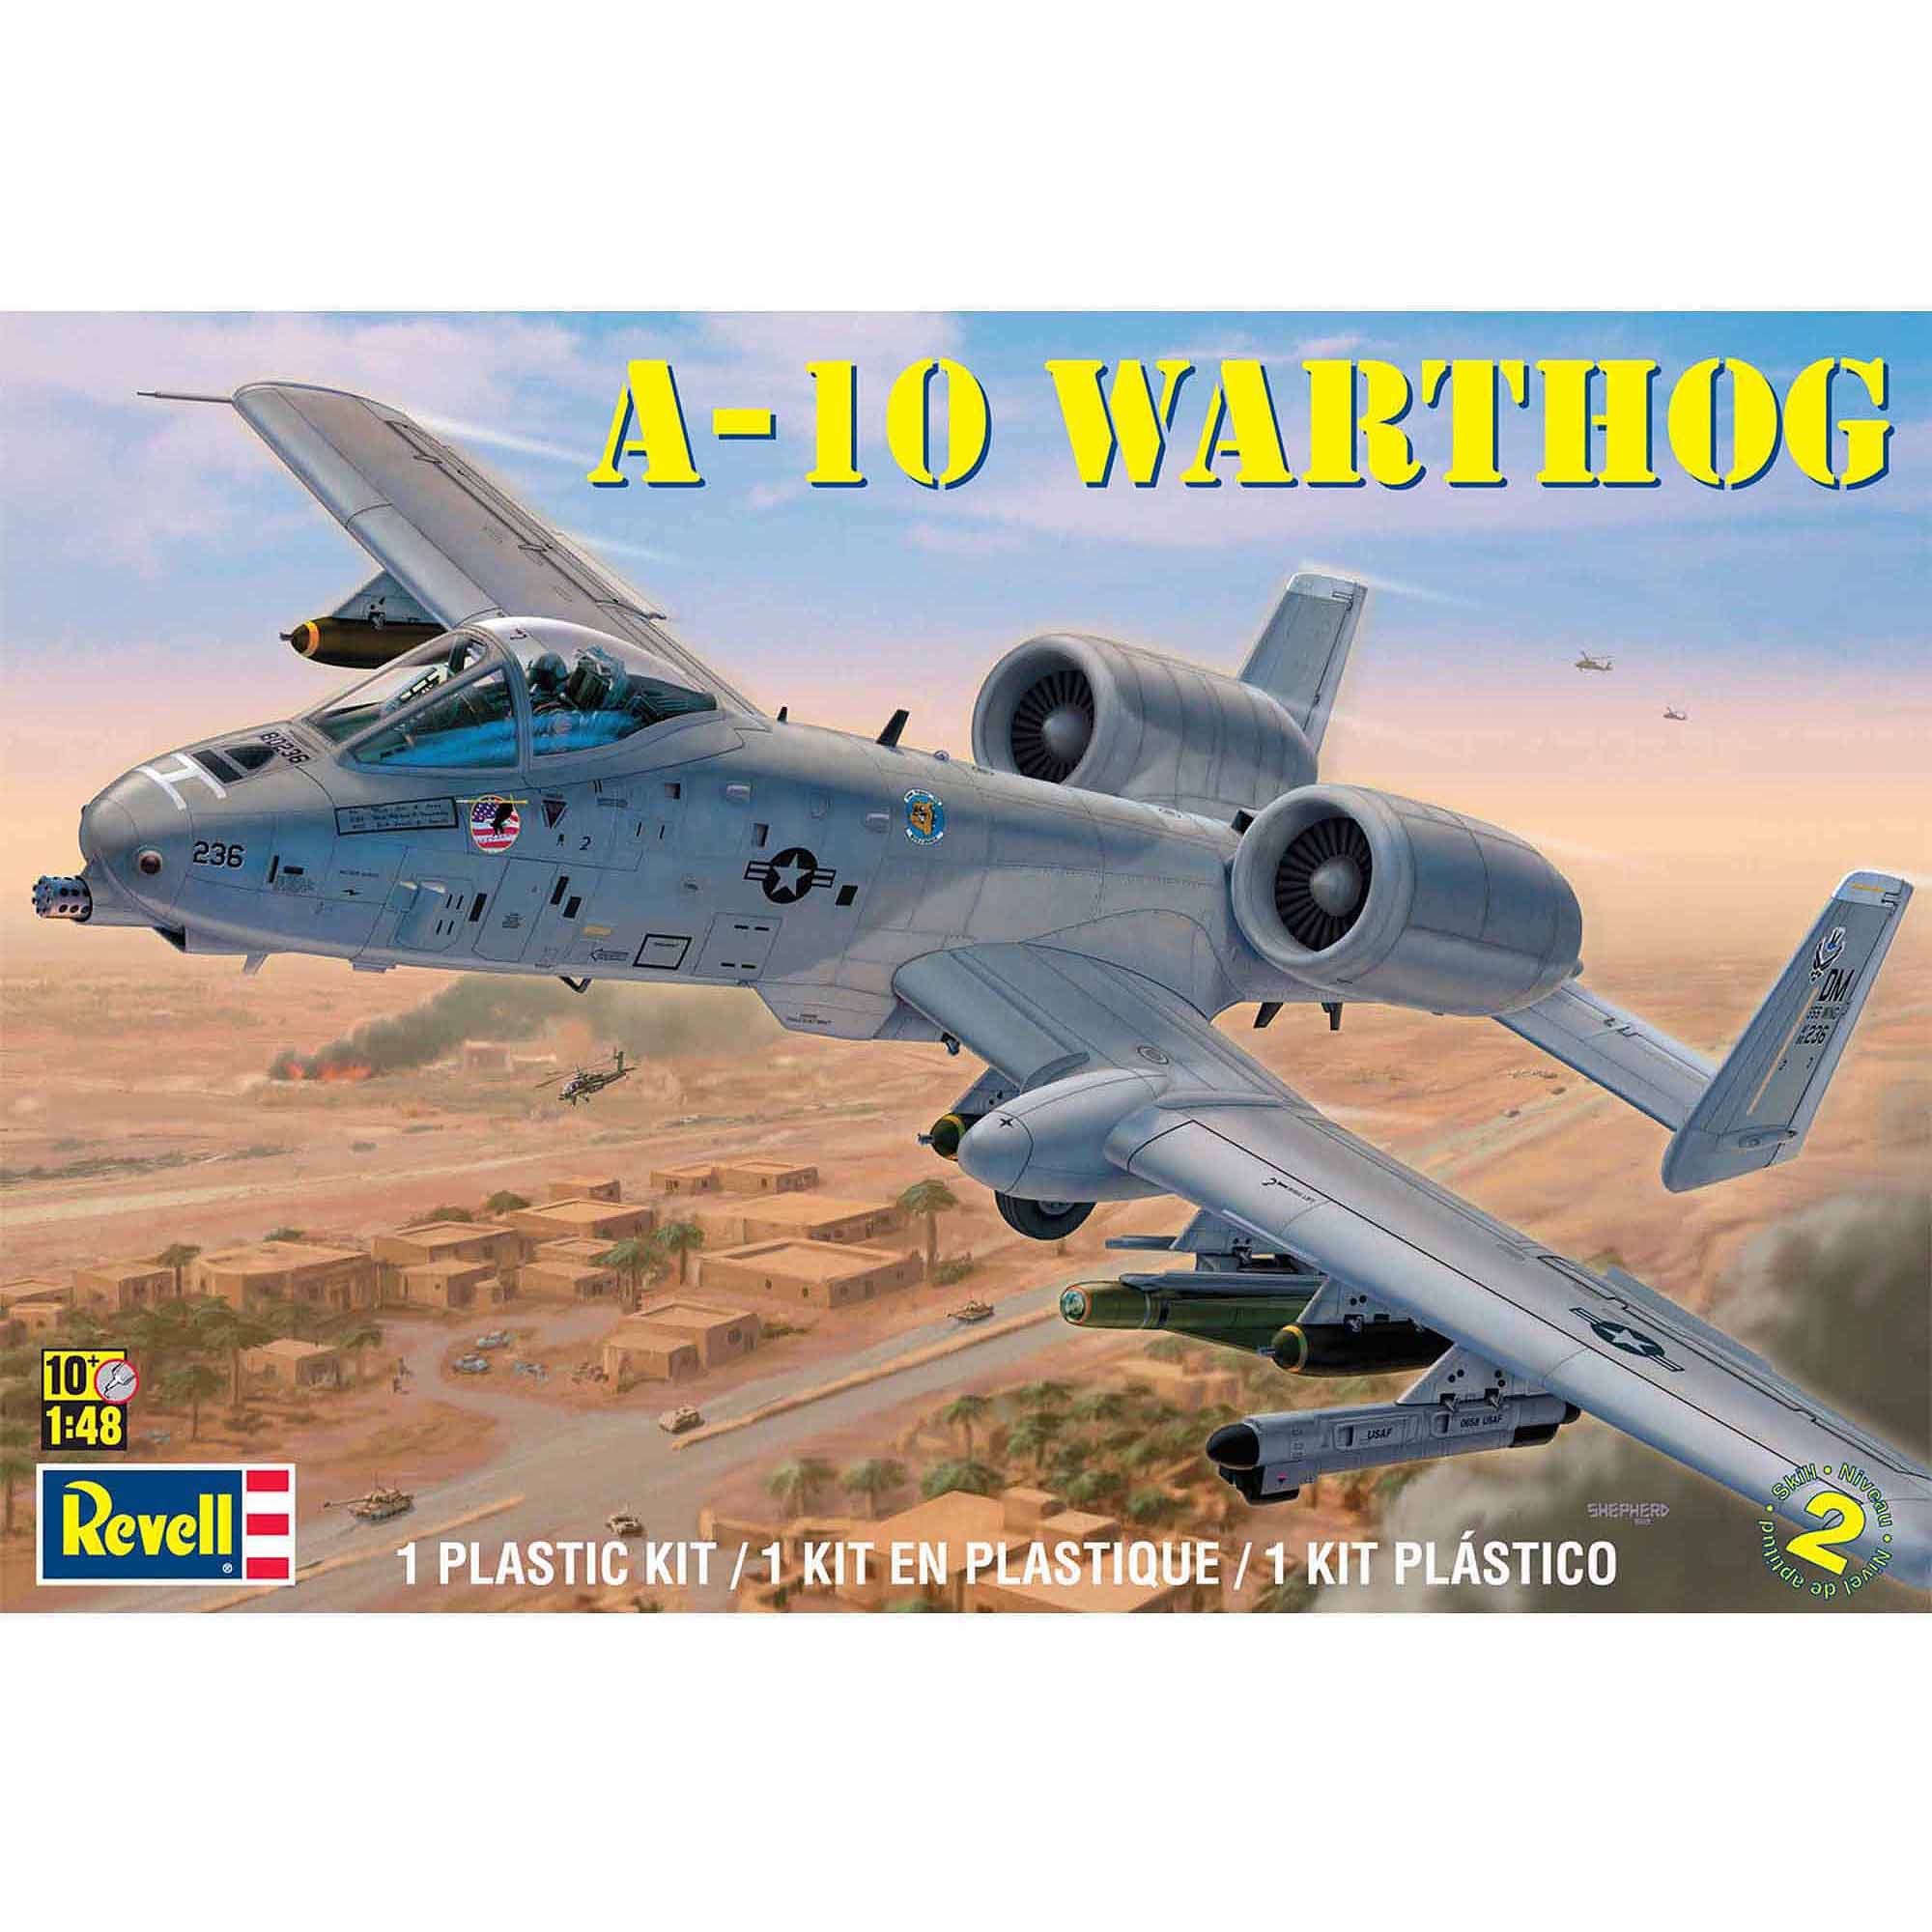 Revell 1:48 Scale A10 Warthog Model Kit